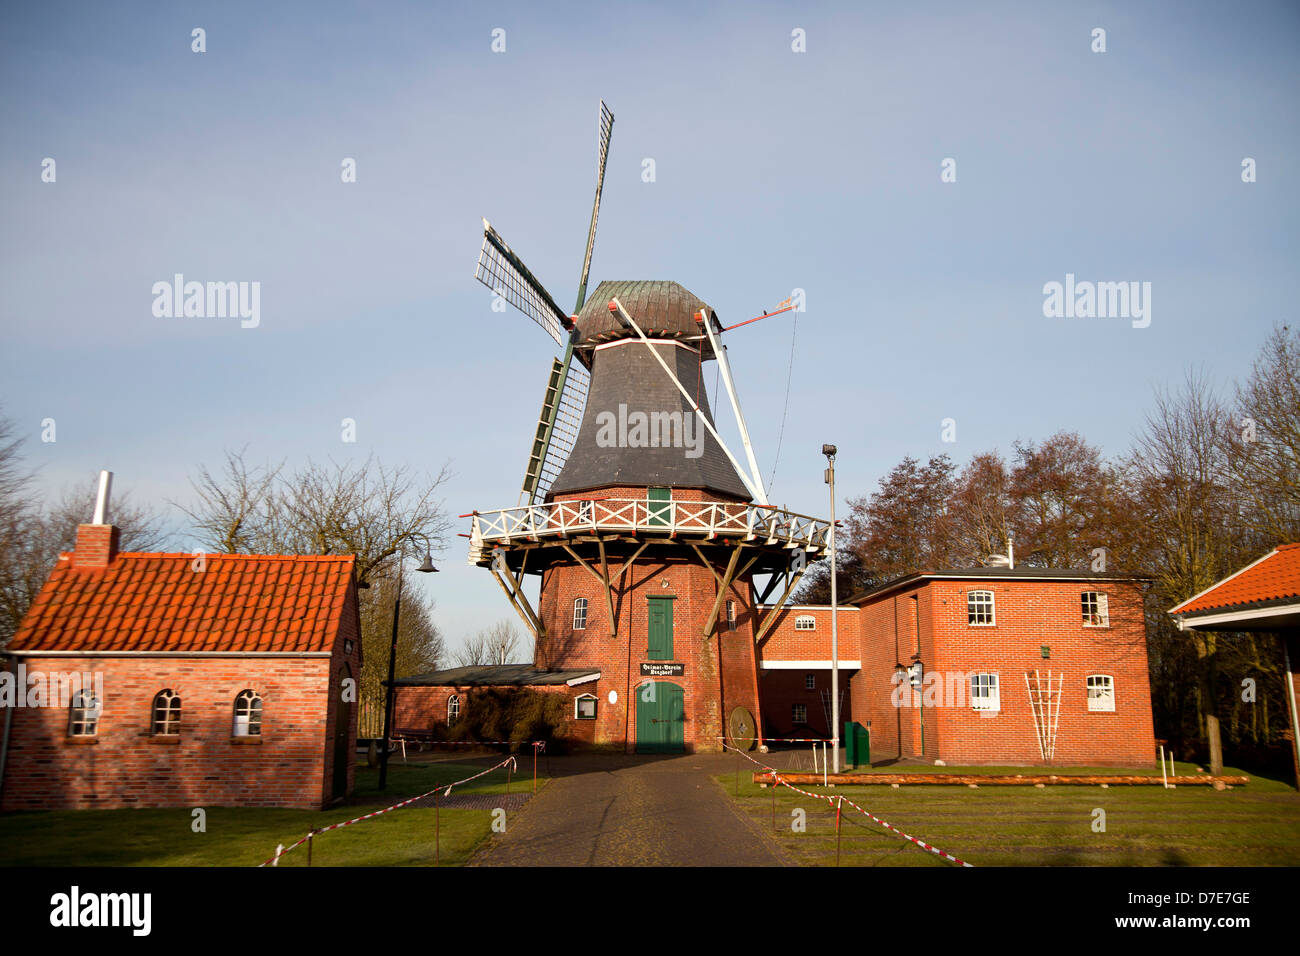 Windmill in Leezdorf, East Frisia, Lower Saxony, Germany, Europe - Stock Image